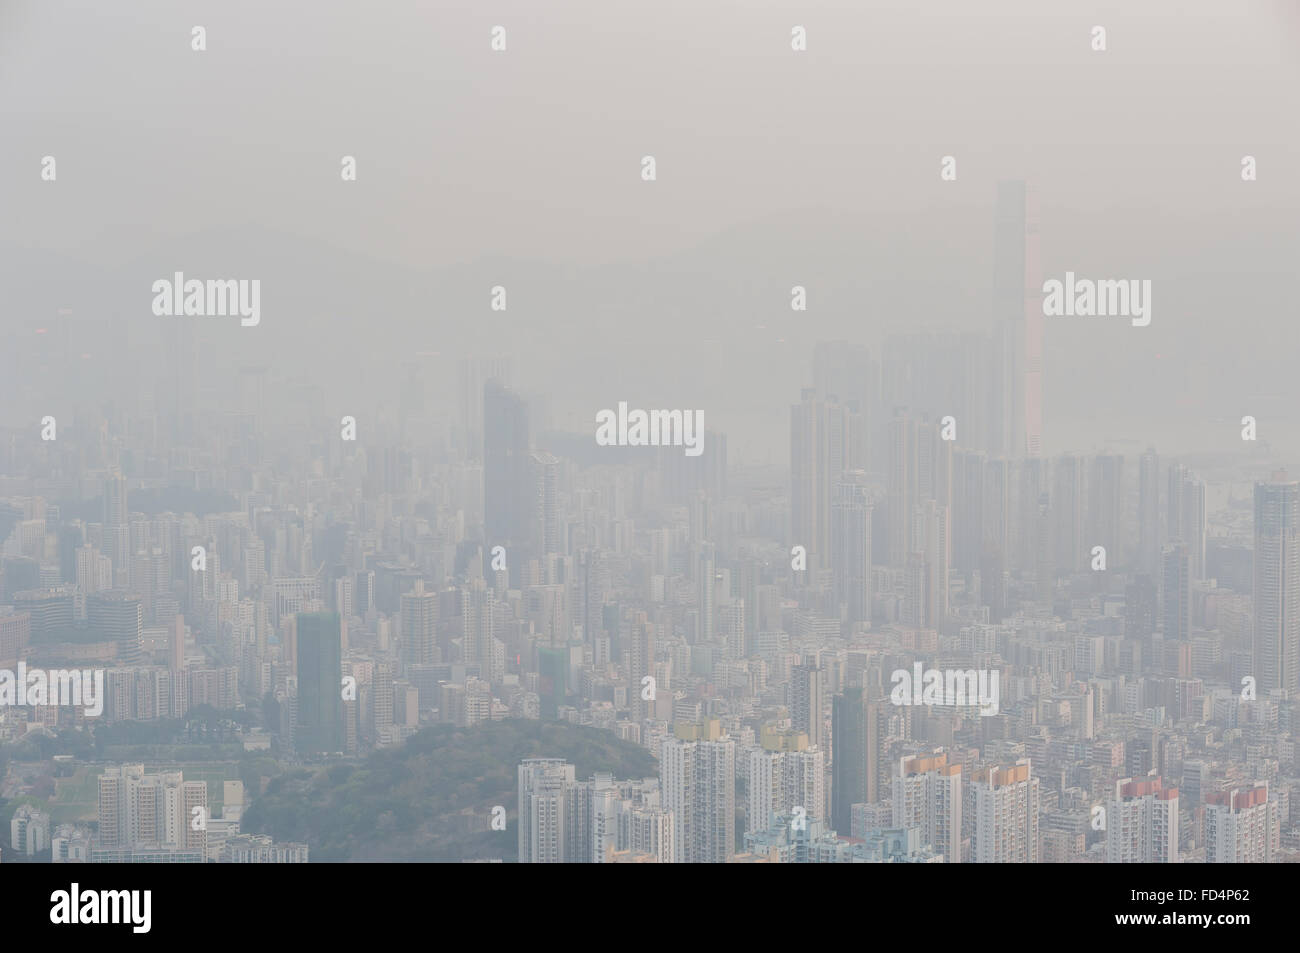 Severe air pollution in Hong Kong obscures the view from the top of Beacon Hill - Stock Image